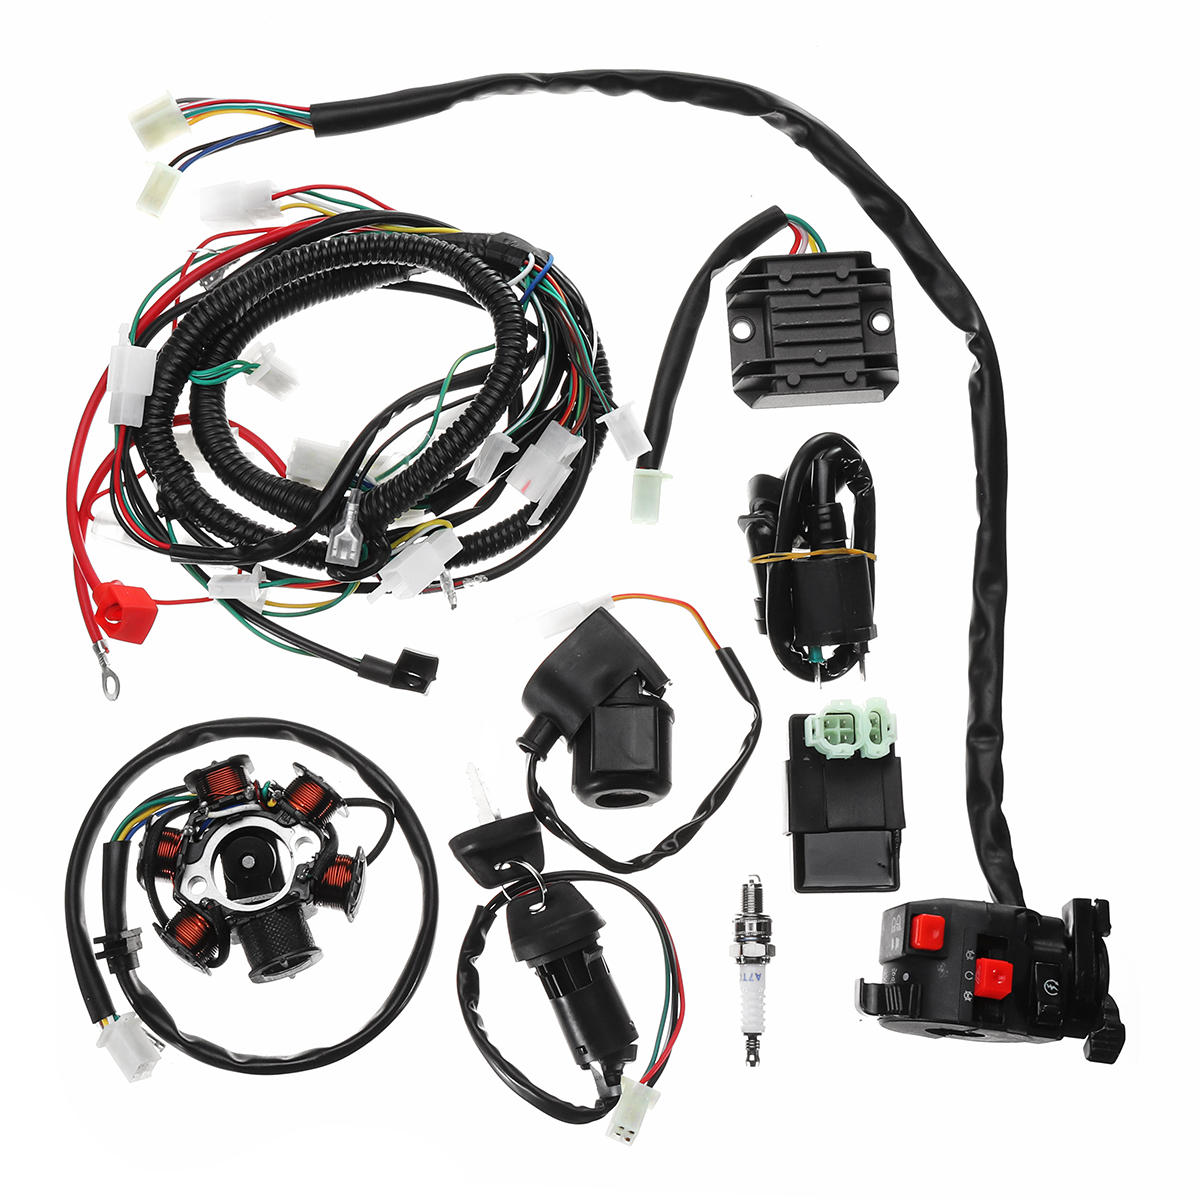 hight resolution of full electrics wiring harness loom cdi coil for gy6 150cc atv quad go kart buggy